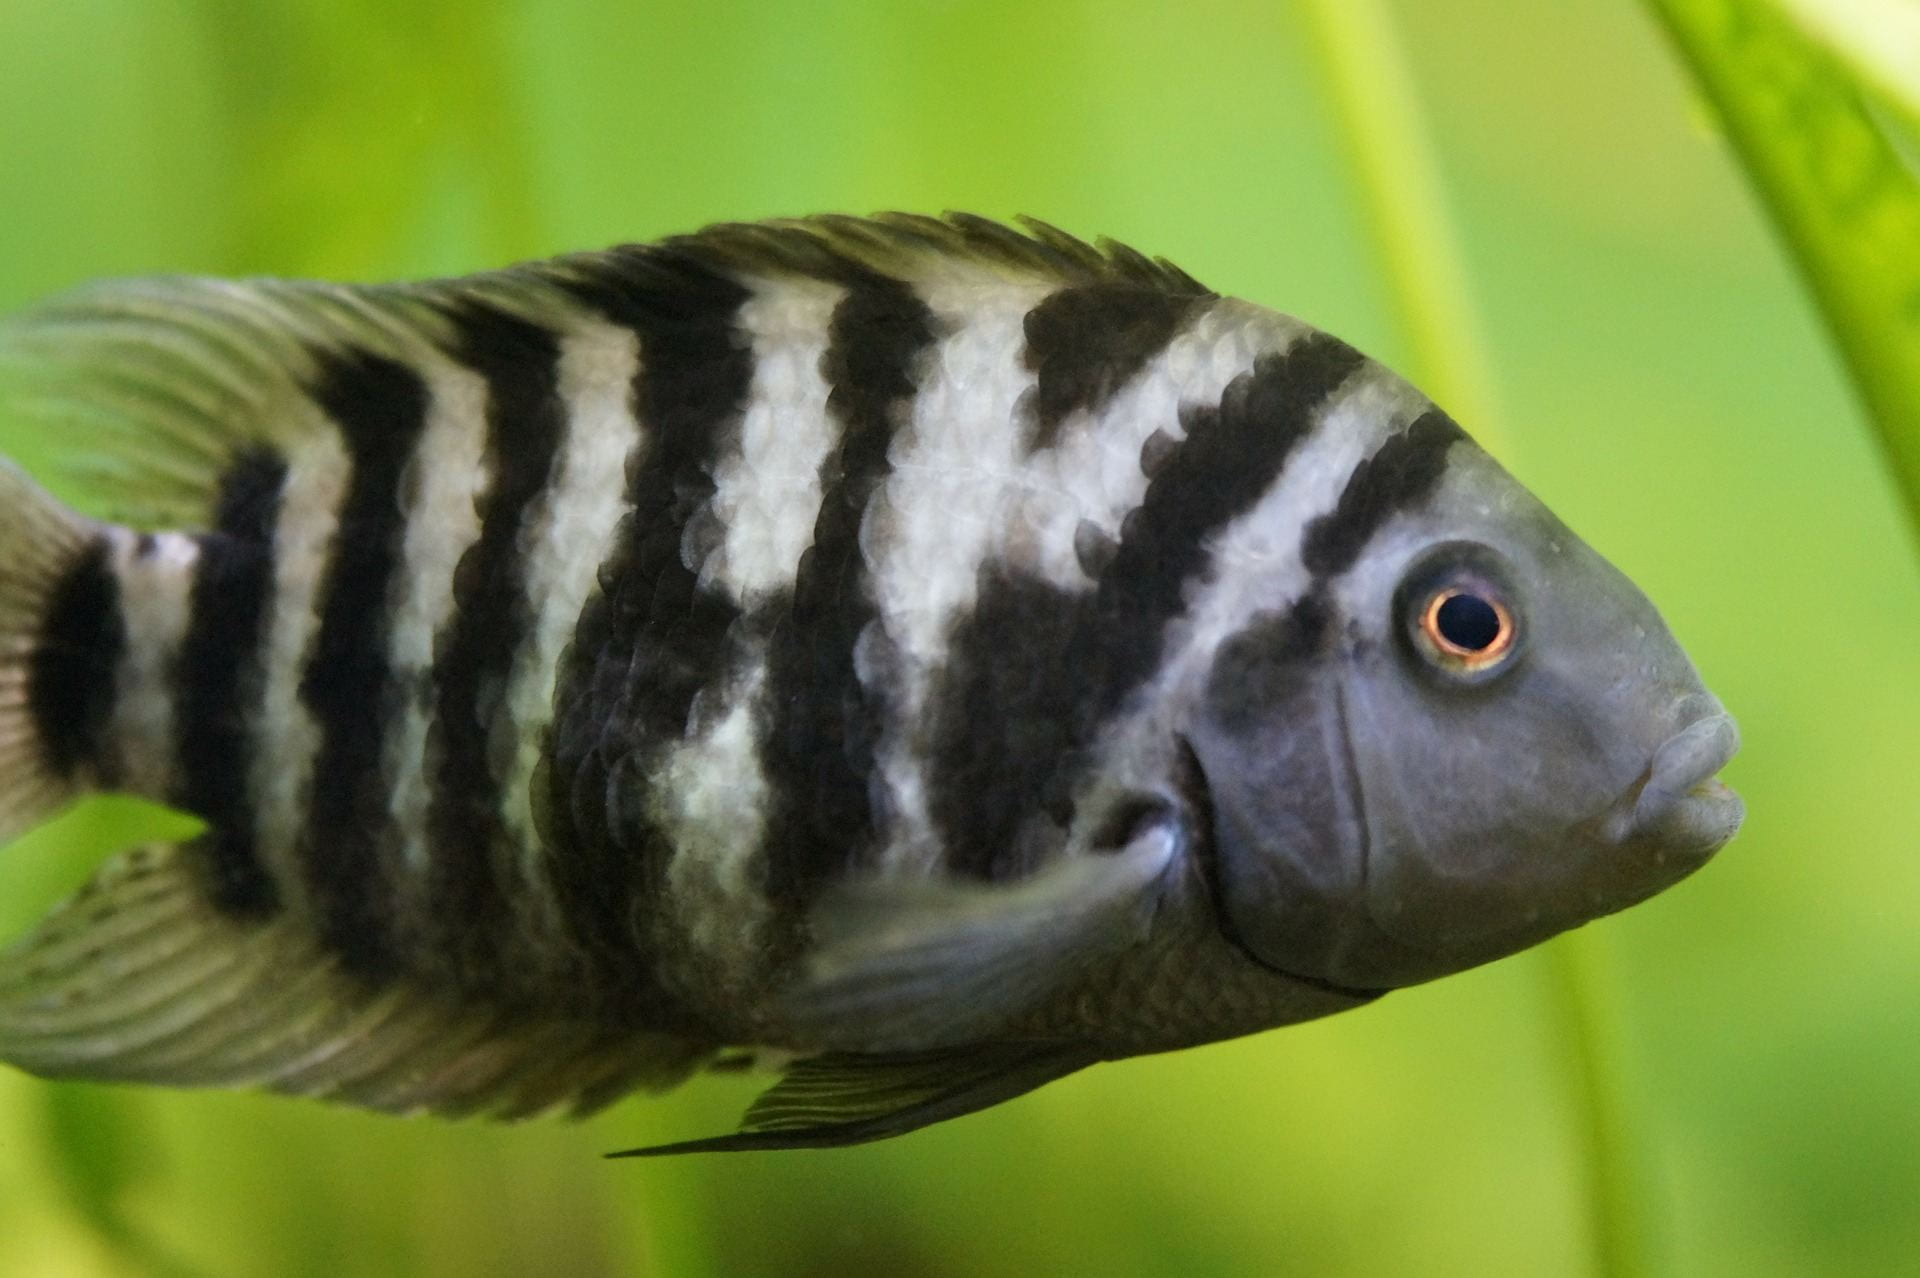 A black and white striped fish swims to the right in front of a blurred out green leaf.